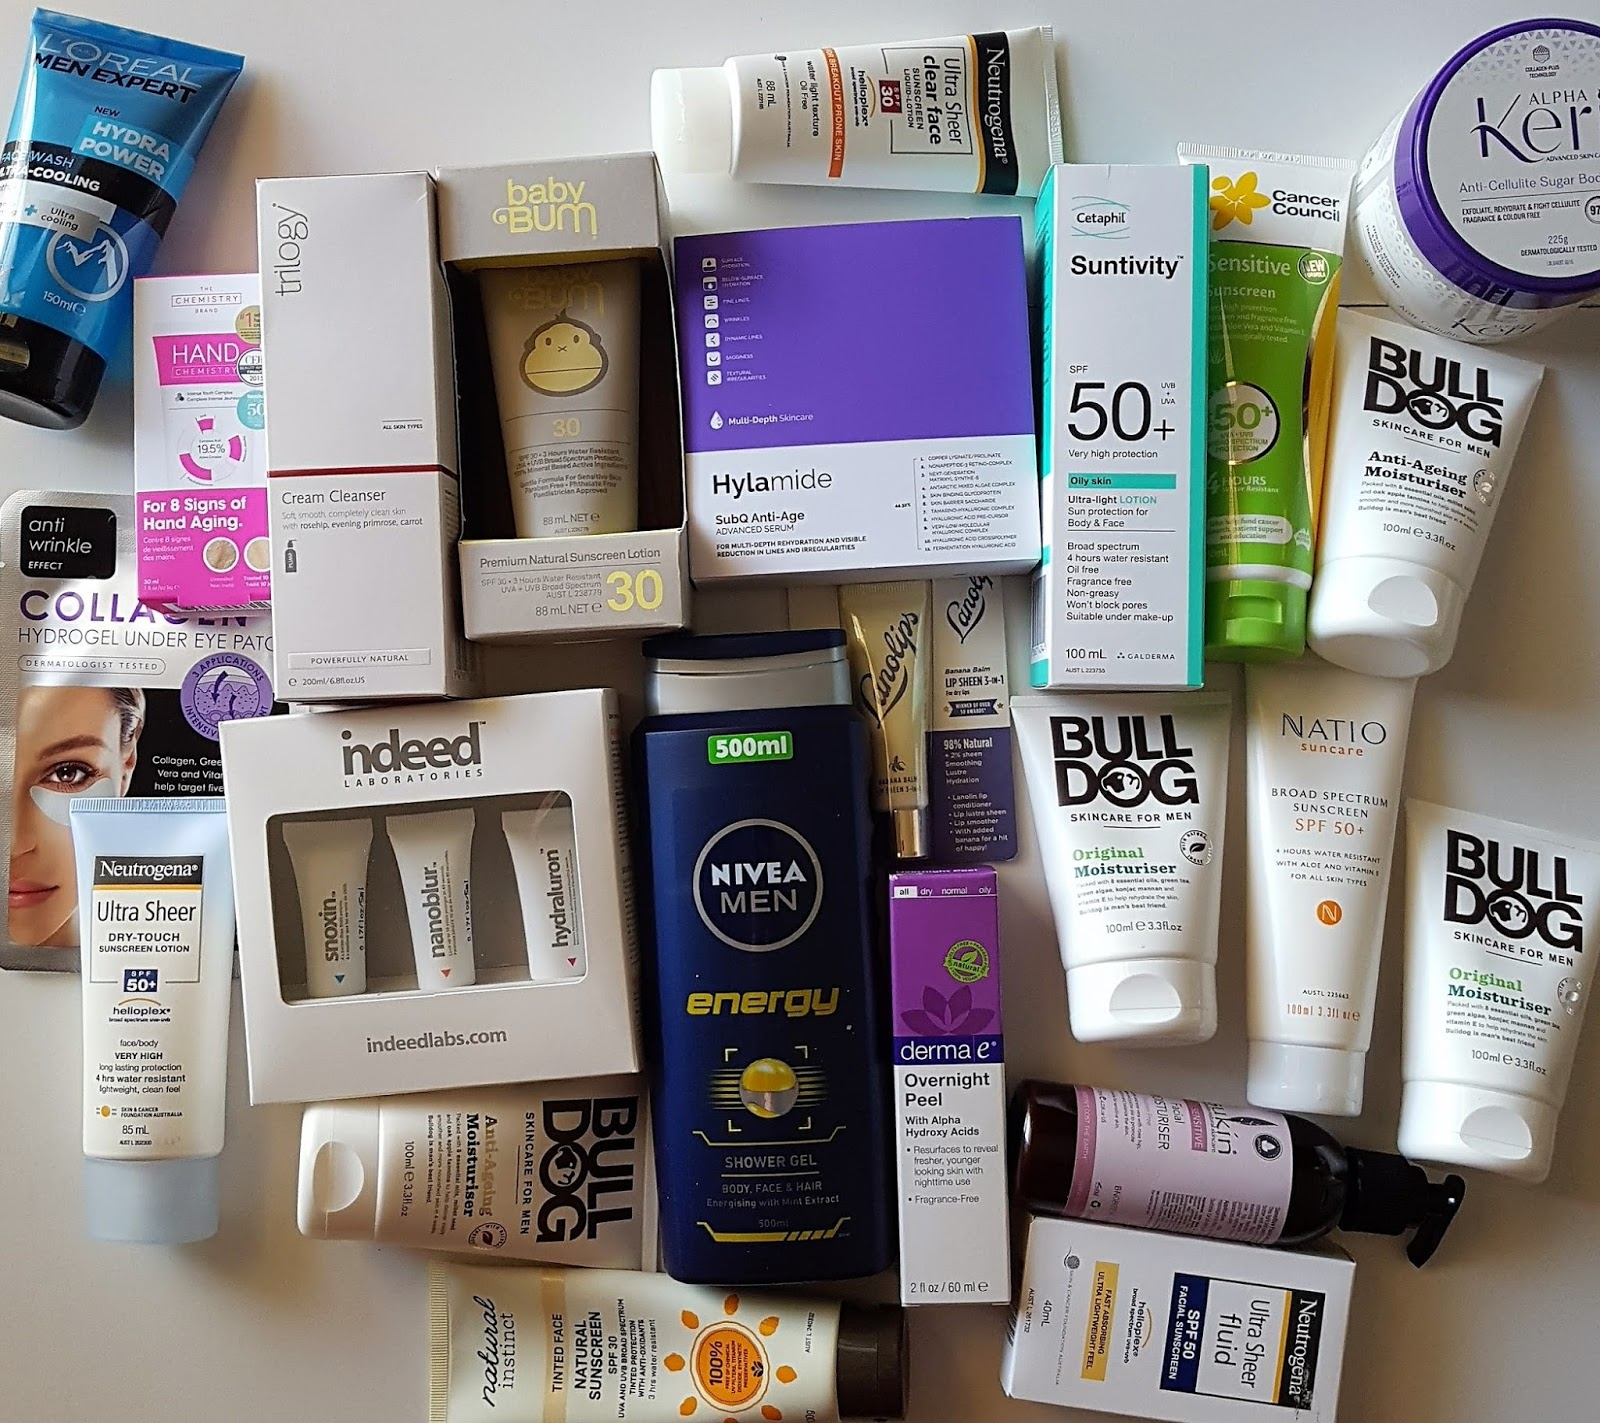 73a341d11b5 This is my biggest Priceline haul to date. Whilst it looks like a lot, when  I take away the sunscreen and Tiger's products, I really didn't buy much at  all.